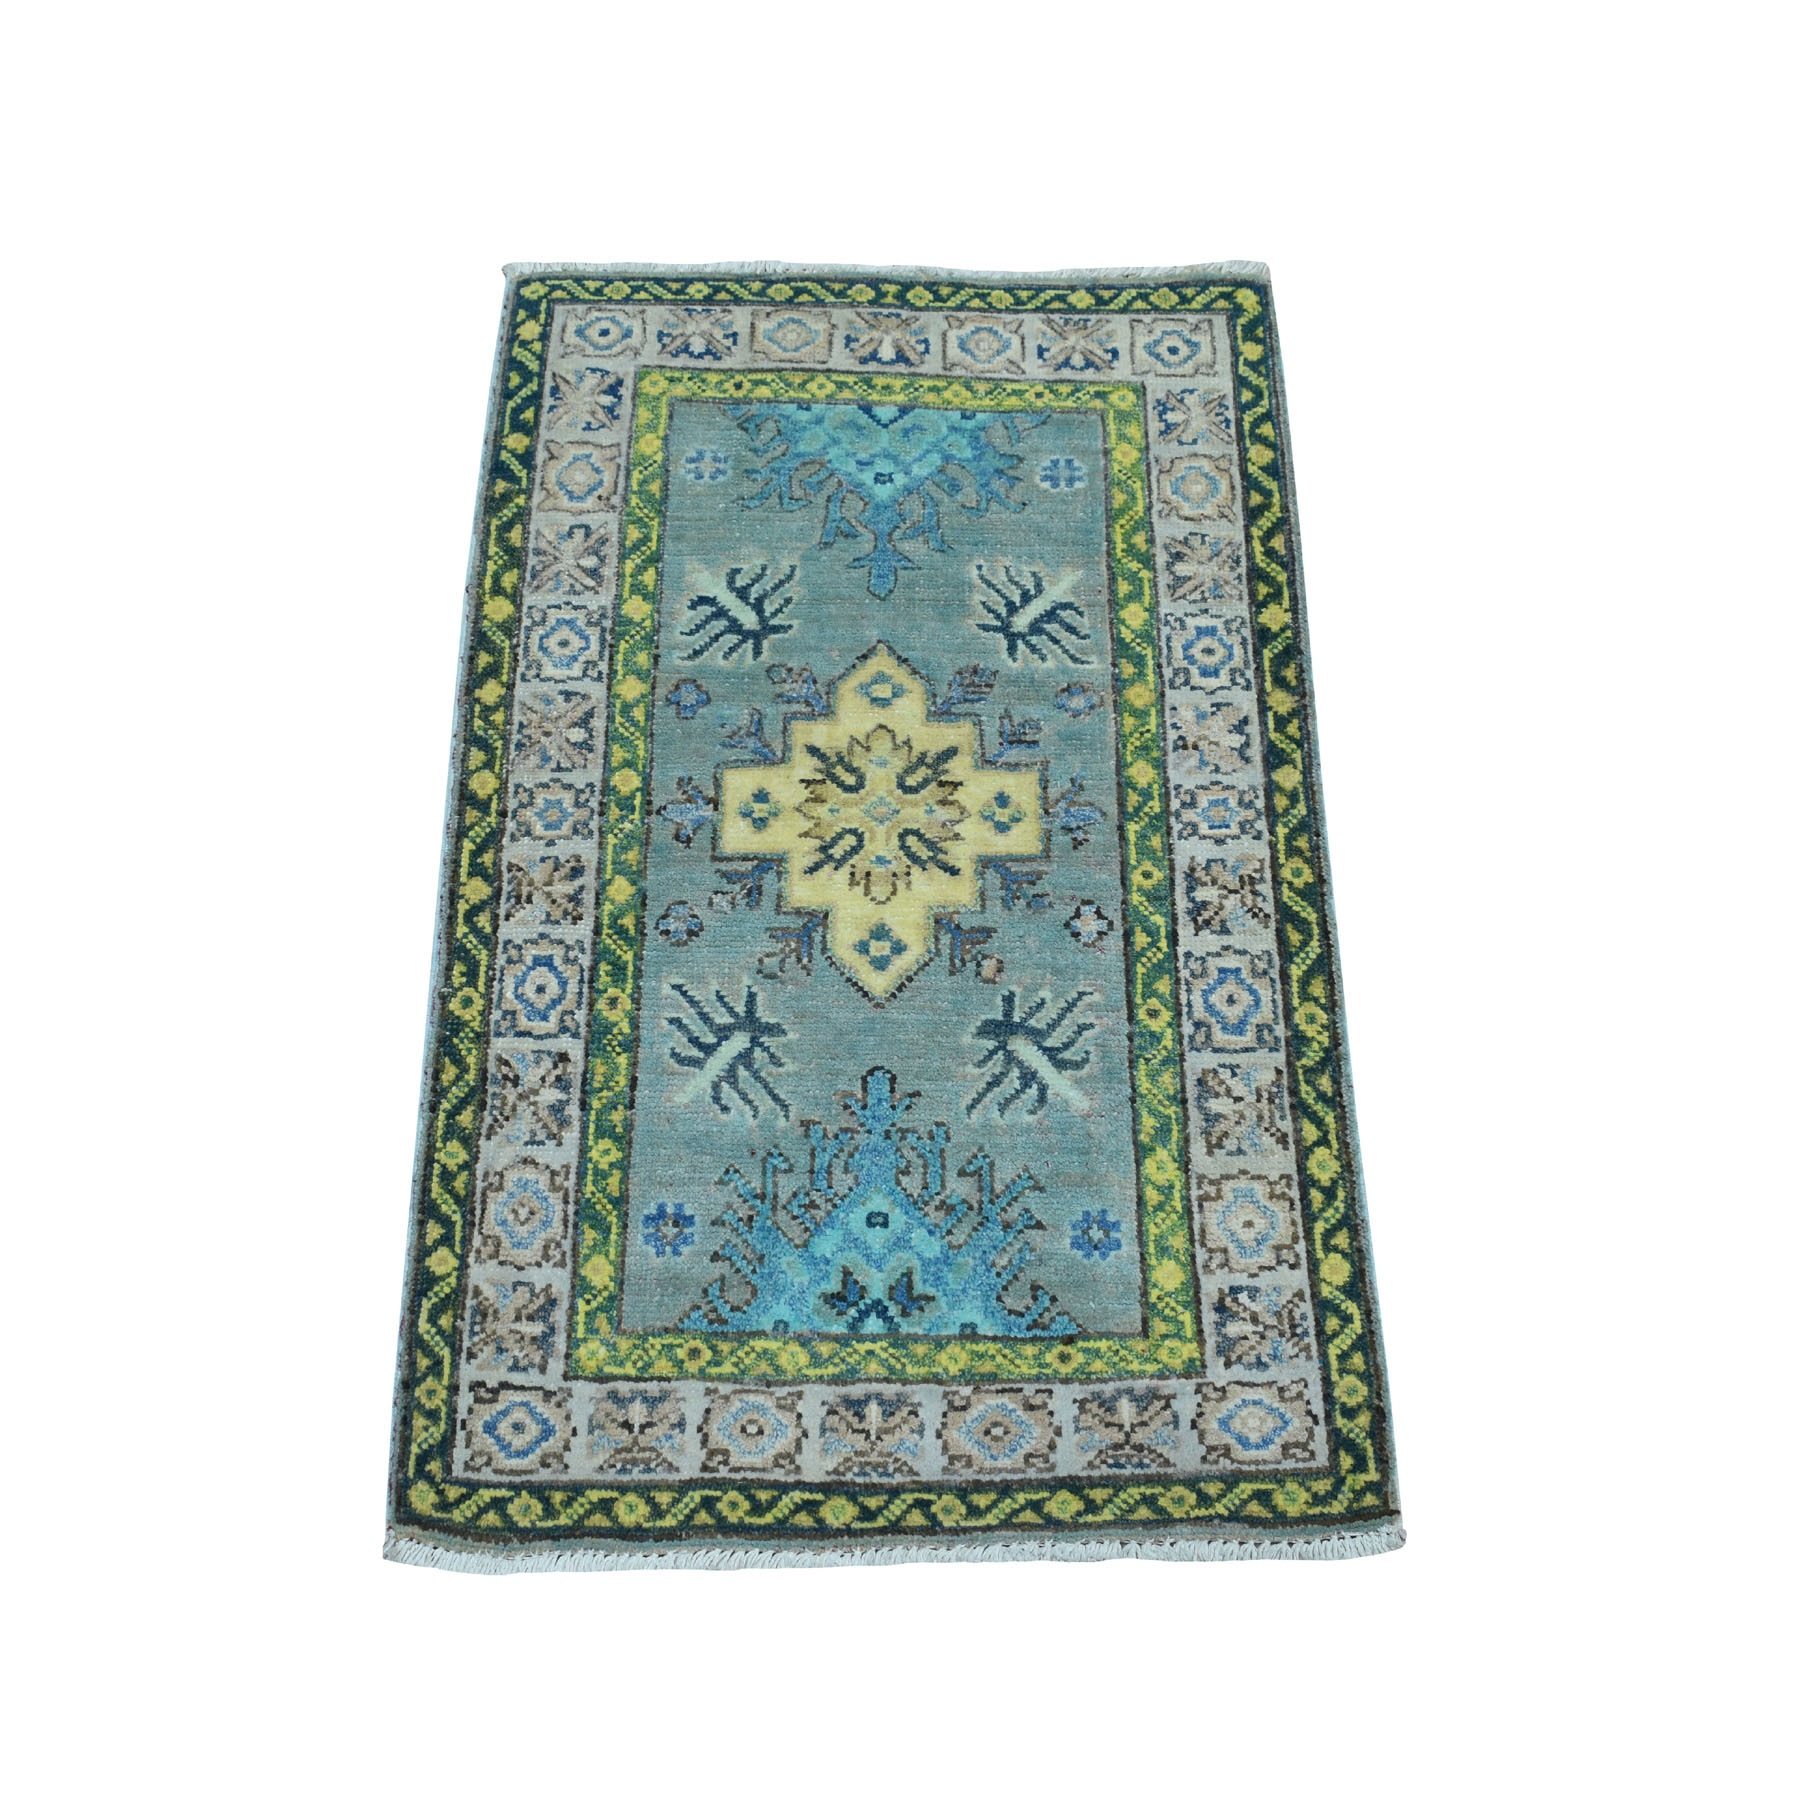 2'x3' Colorful Green Fusion Kazak Pure Wool Hand Knotted Oriental Rug 52382